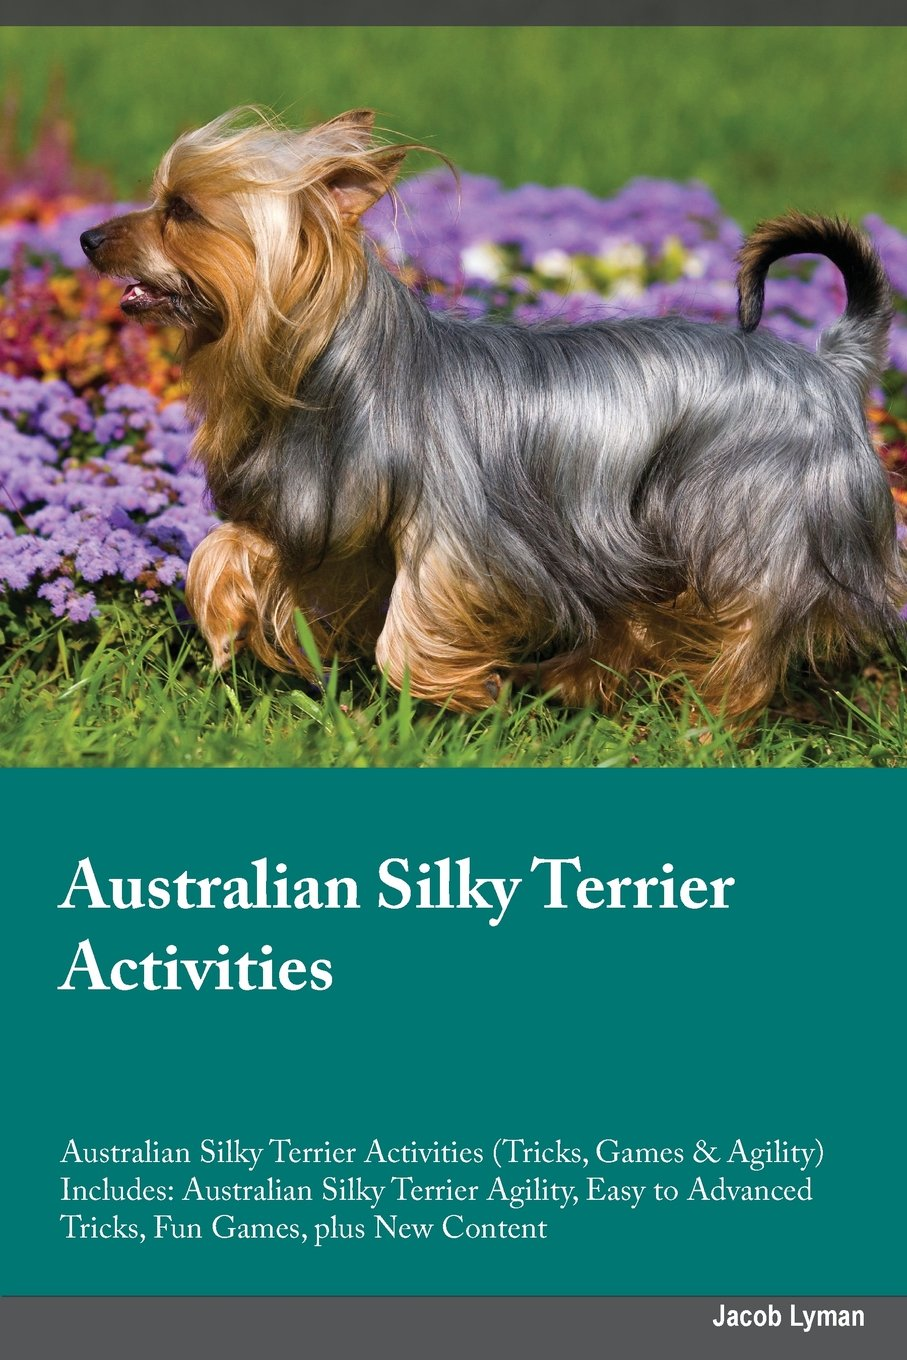 Australian Silky Terrier Activities Australian Silky Terrier Activities (Tricks, Games & Agility) Includes: Australian Silky Terrier Agility, Easy to Advanced Tricks, Fun Games, plus New Content pdf epub